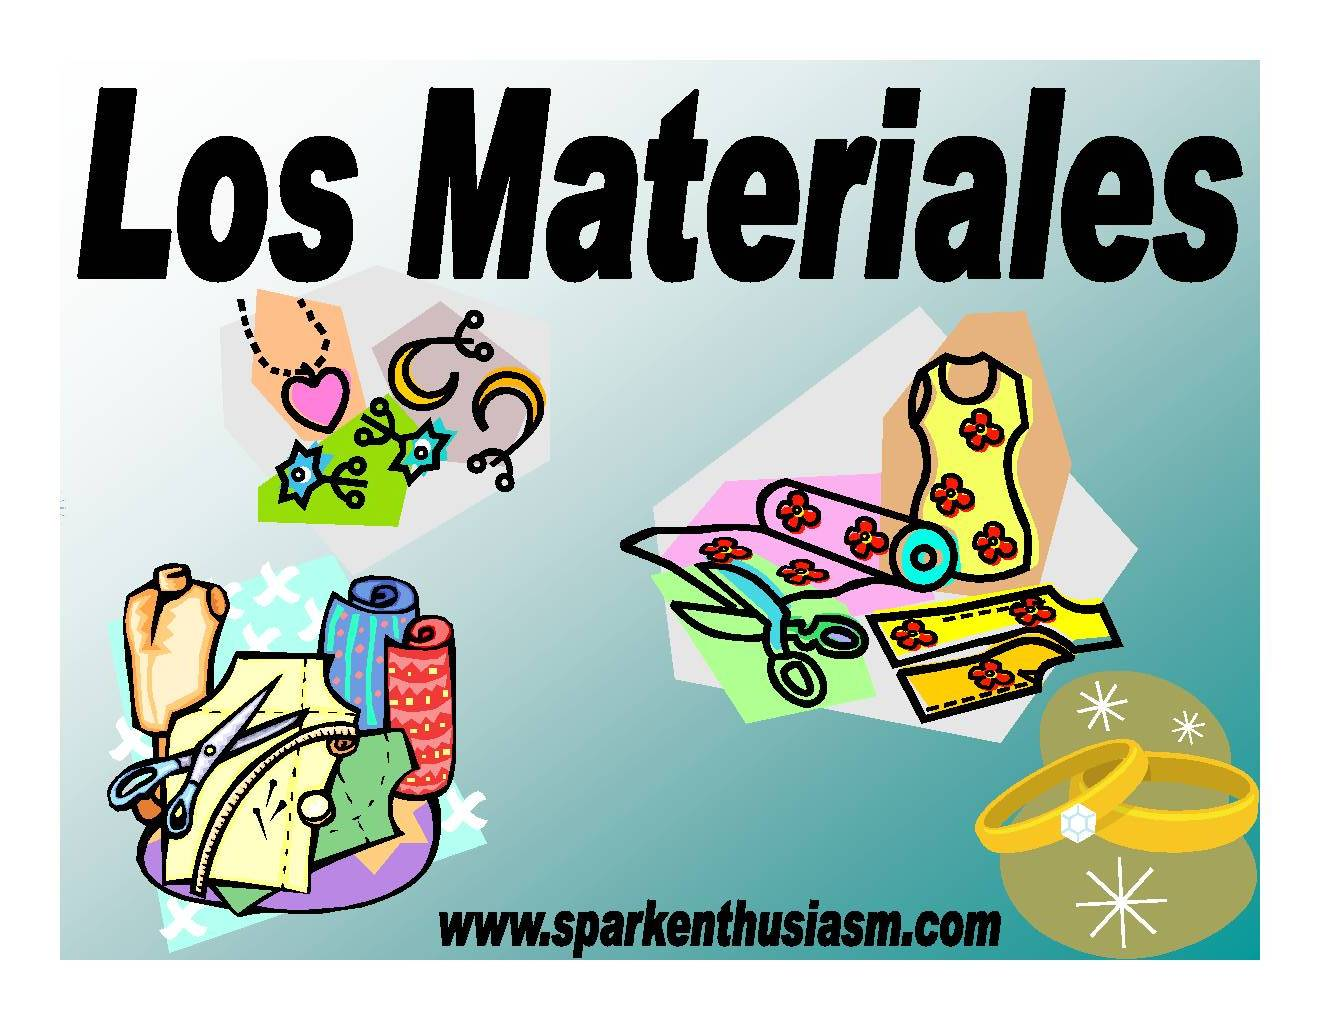 Spark Enthusiasm Books Publications # Los Muebles Powerpoint